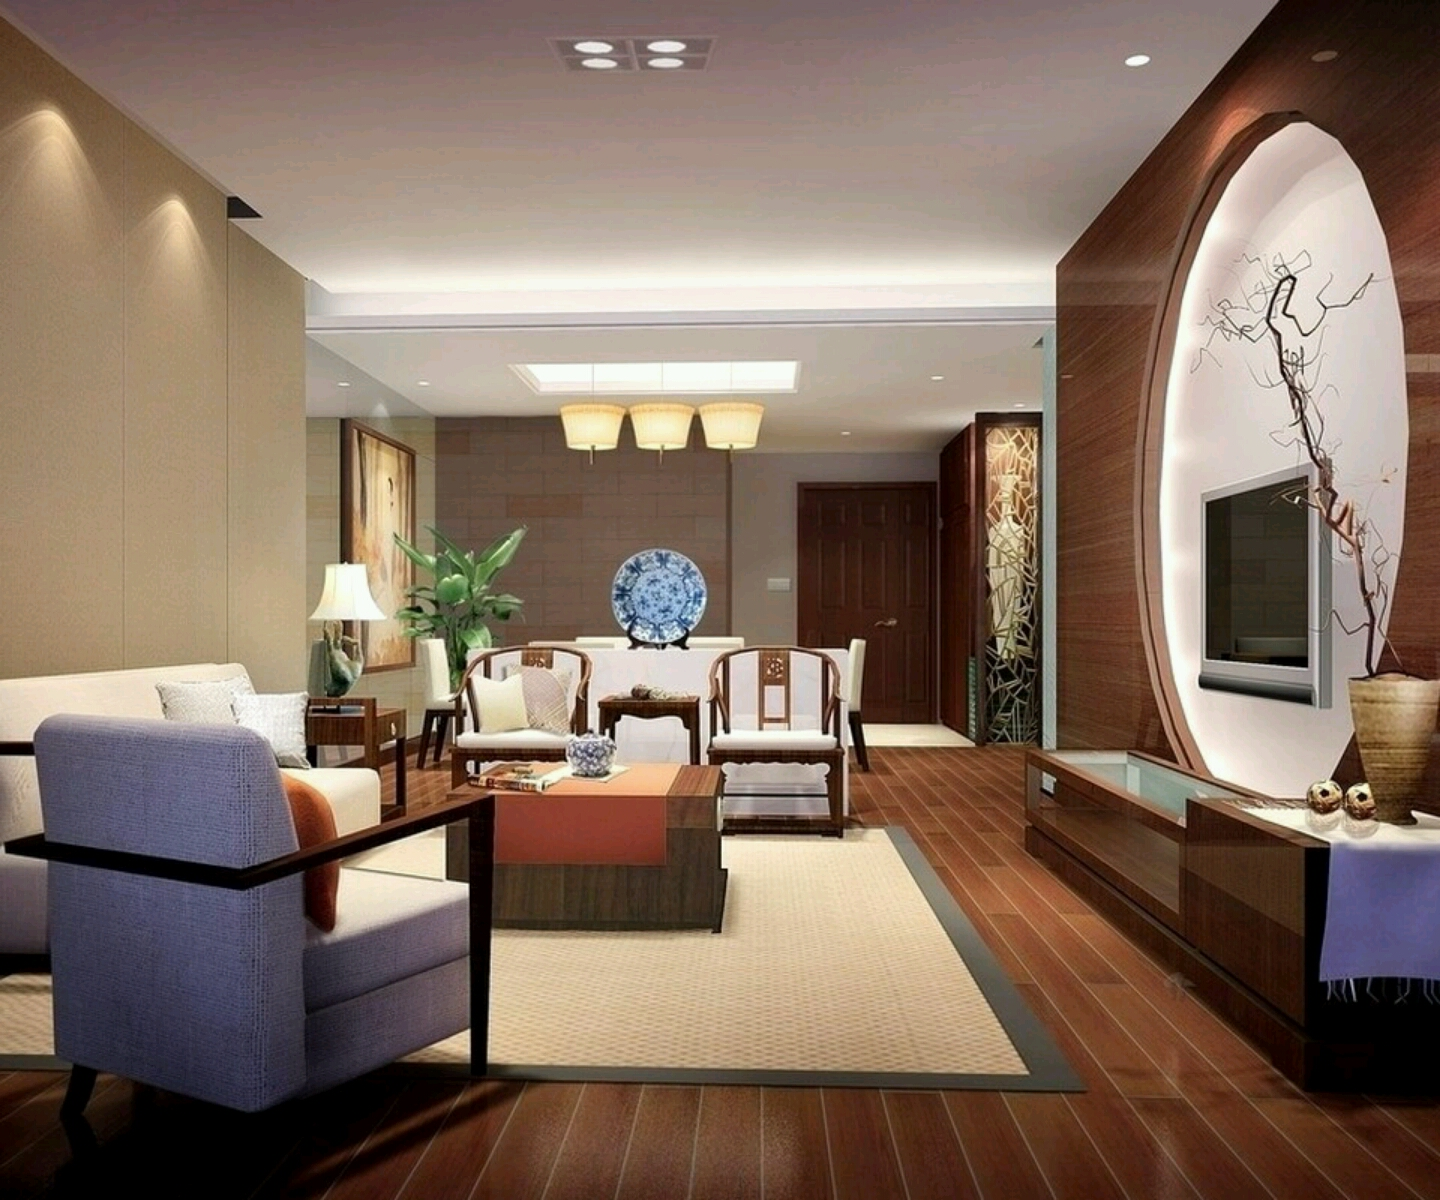 Luxury homes interior decoration living room designs ideas for Luxury homes designs interior